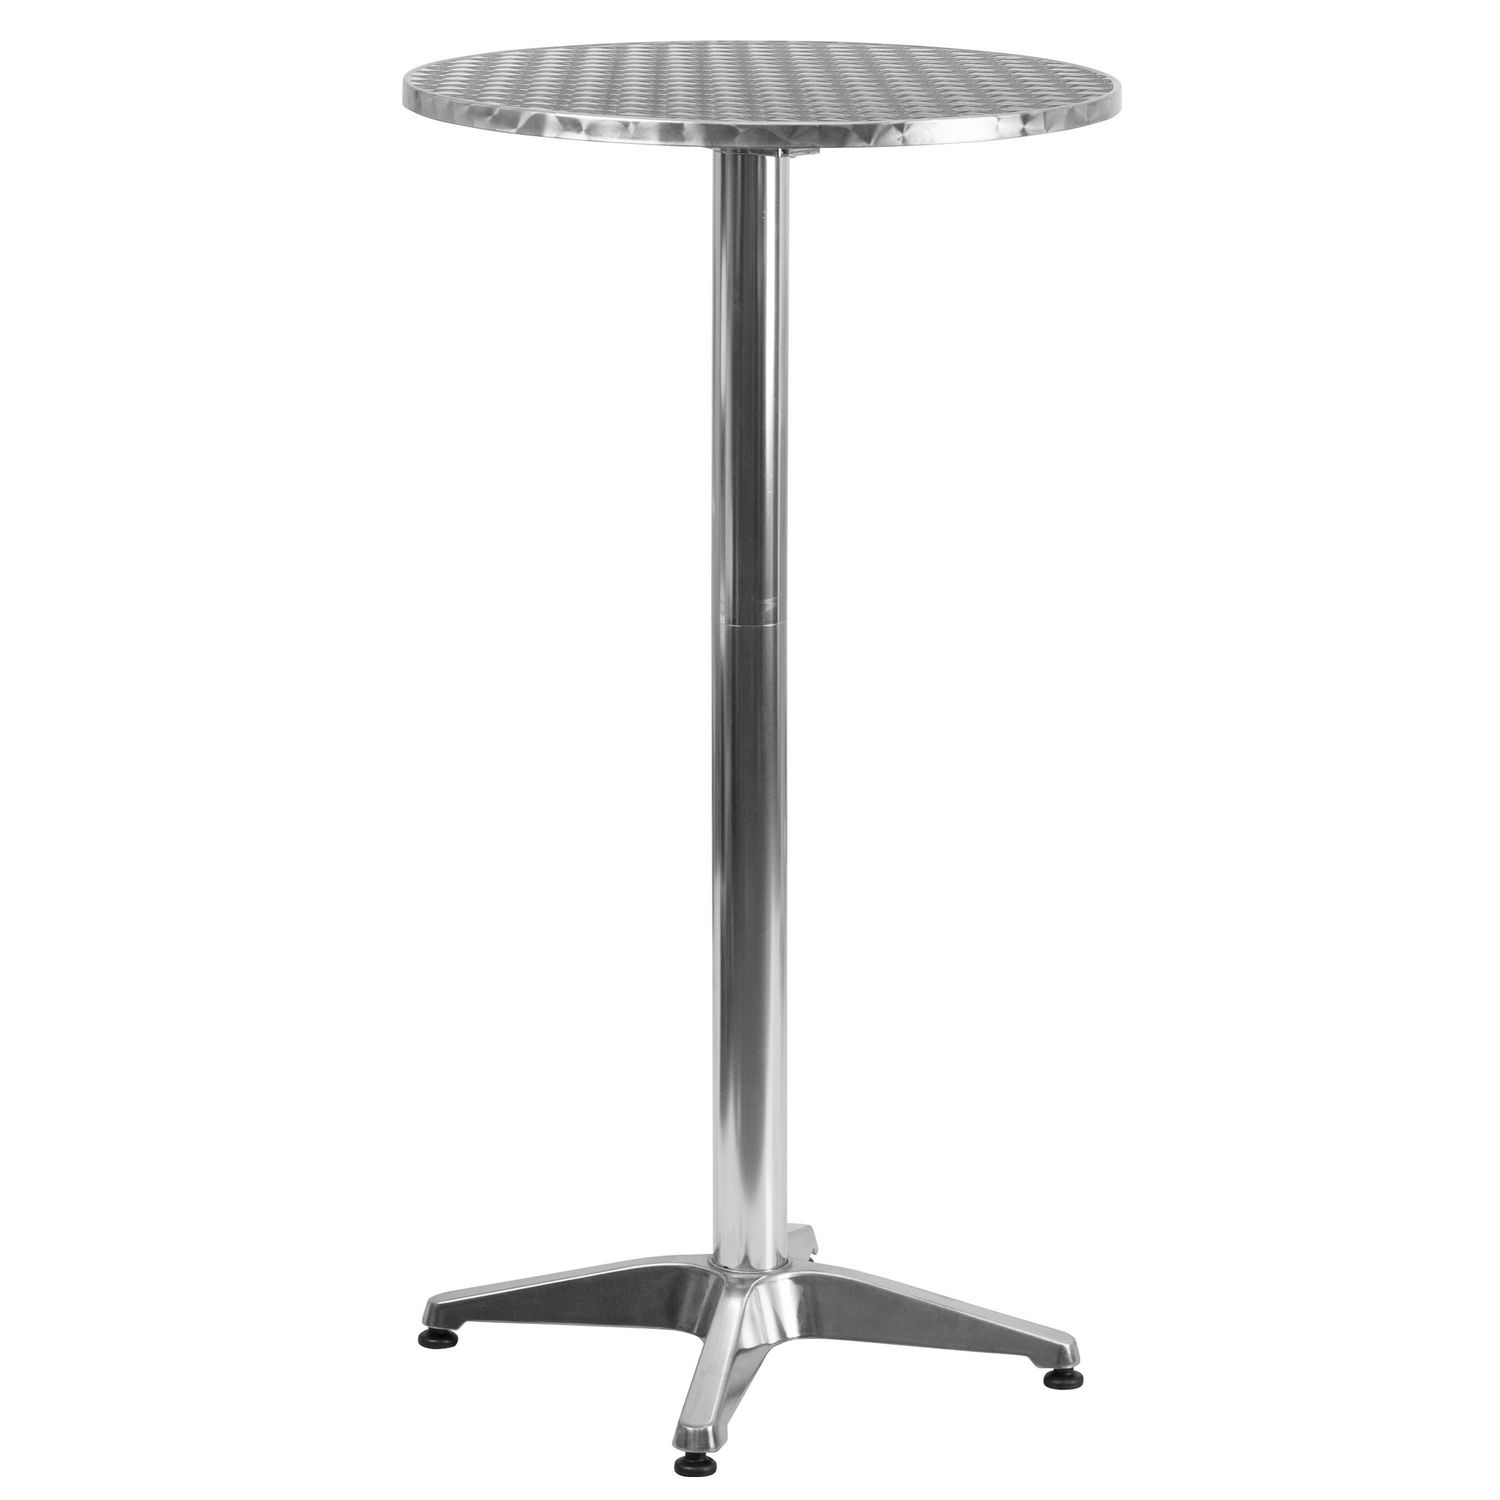 Table Aluminium Pliante Table Haute De Bar Ronde Pliante Flash Furniture De 59 06 Cm 23 25 Po En Aluminium